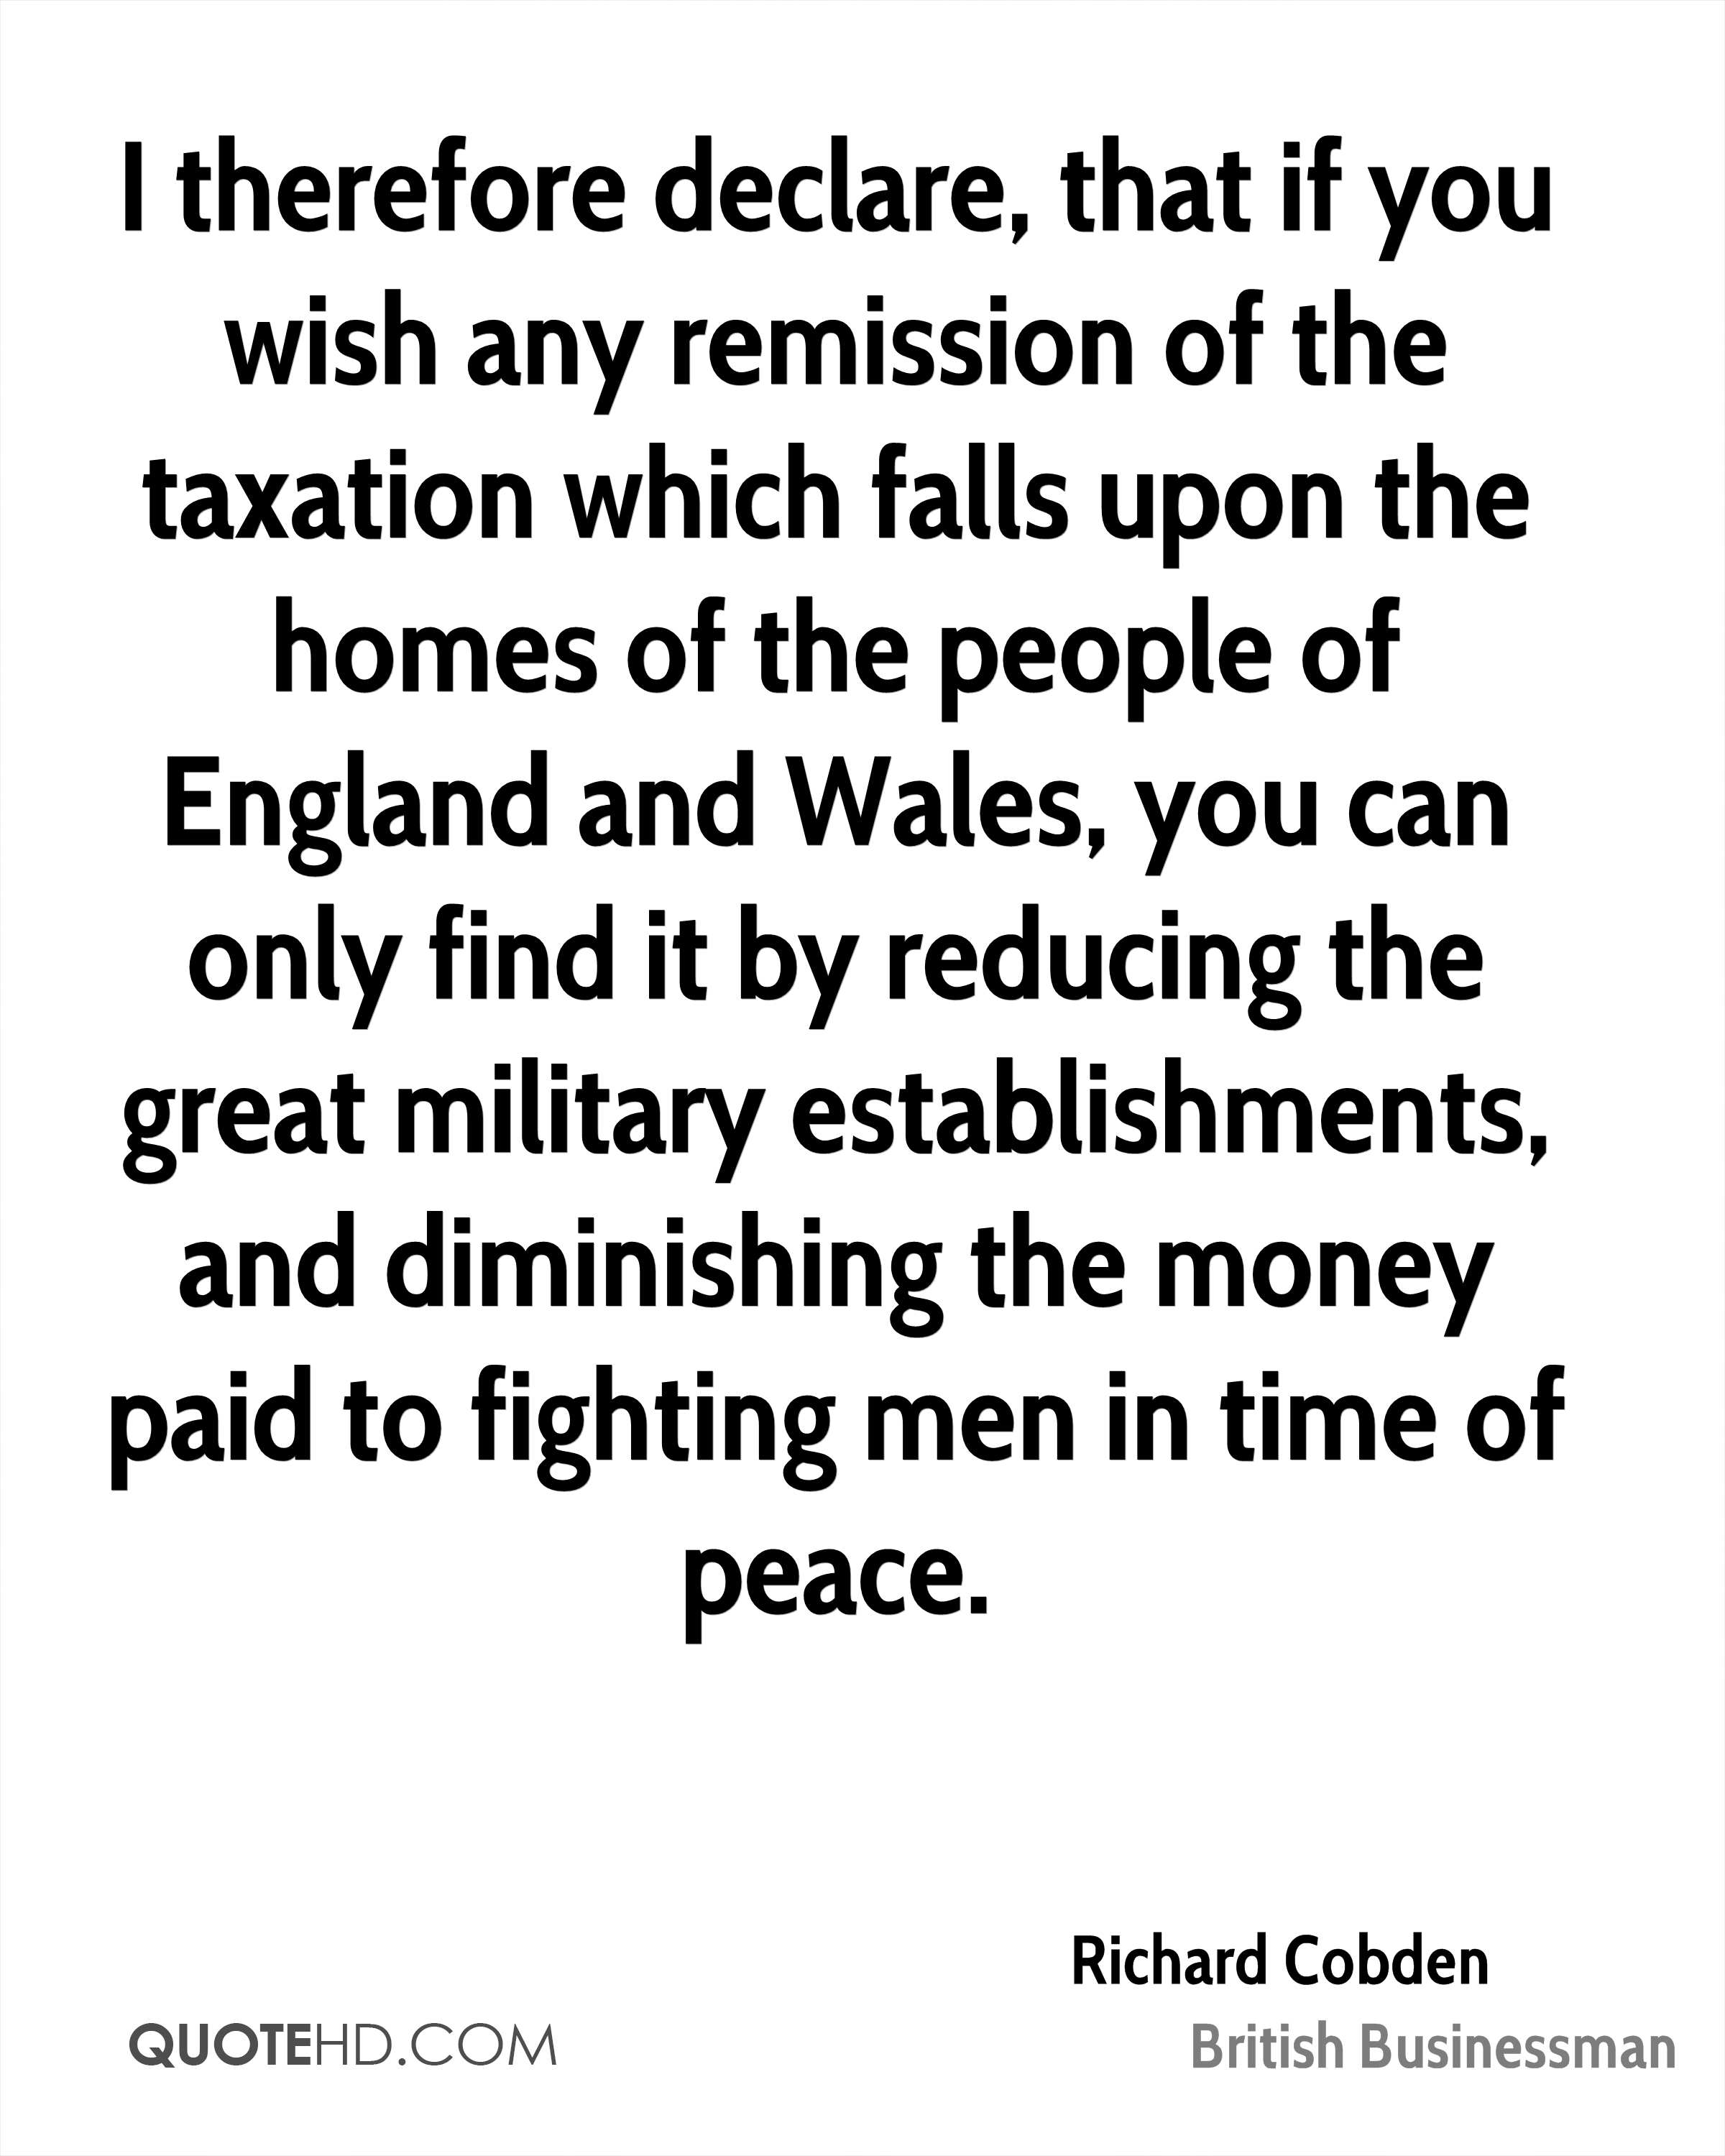 I therefore declare, that if you wish any remission of the taxation which falls upon the homes of the people of England and Wales, you can only find it by reducing the great military establishments, and diminishing the money paid to fighting men in time of peace.